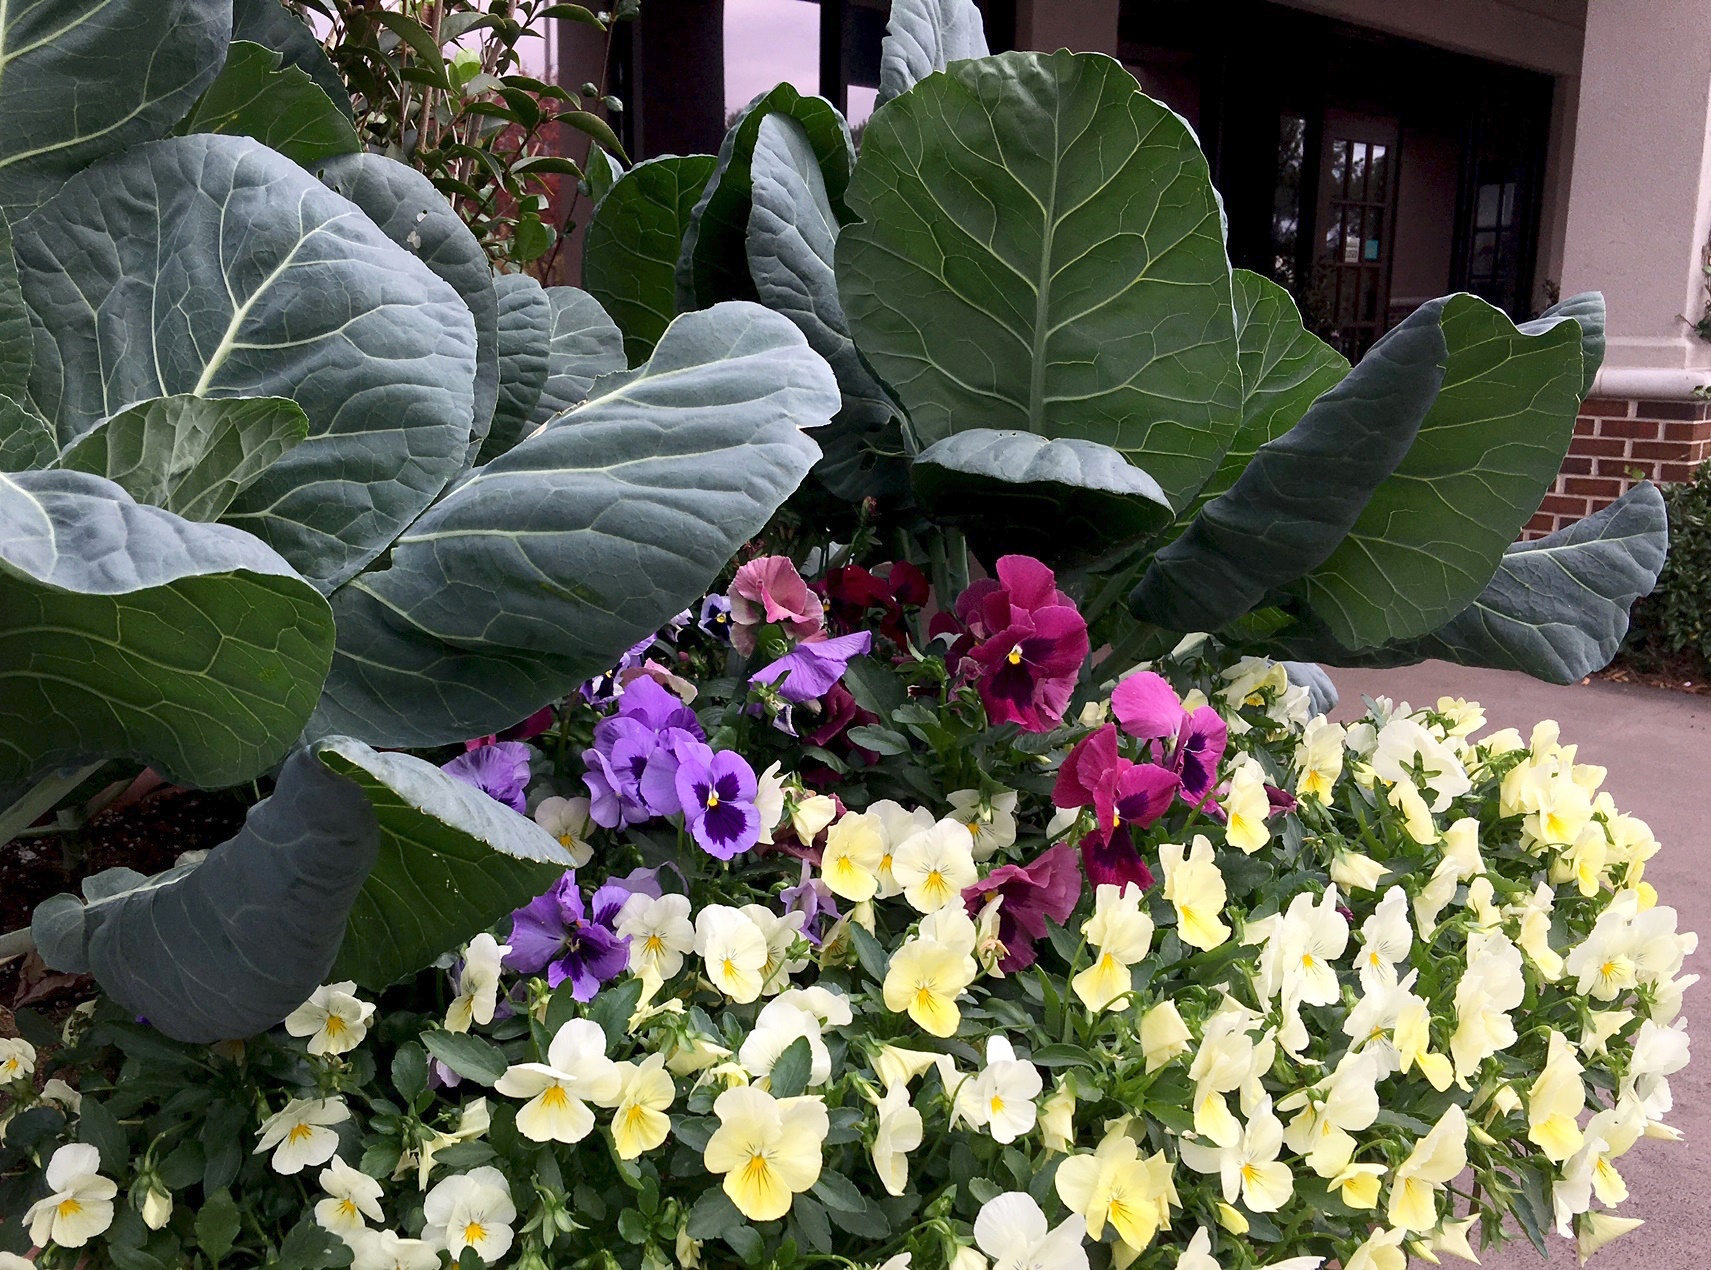 While collards are really old fashioned, the application with ornamentals is new and trendy. Their monolithic blue-green leaves can serve as an amazing backdrop to pansies and snapdragons